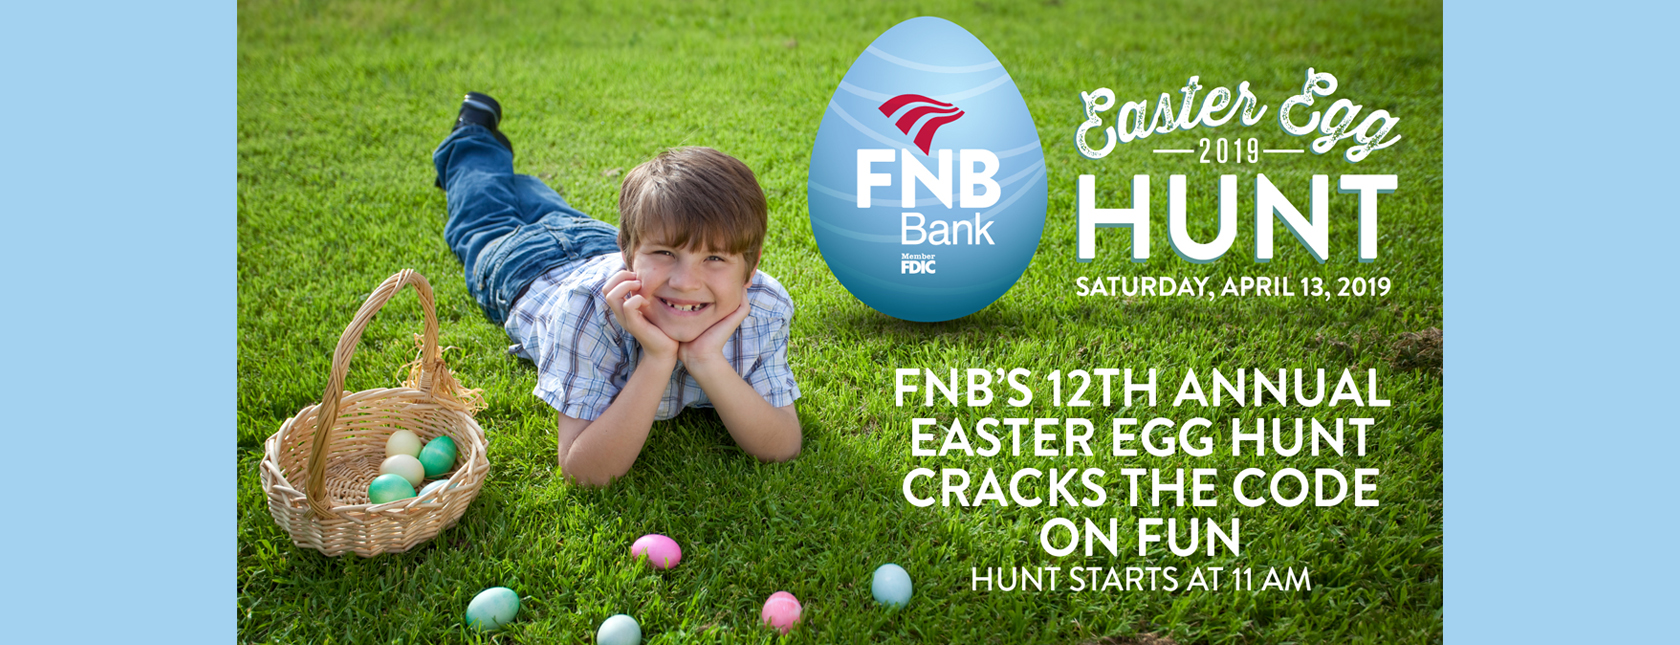 FNB's 12th Annual Easter Egg Hunt is Saturday, April 13